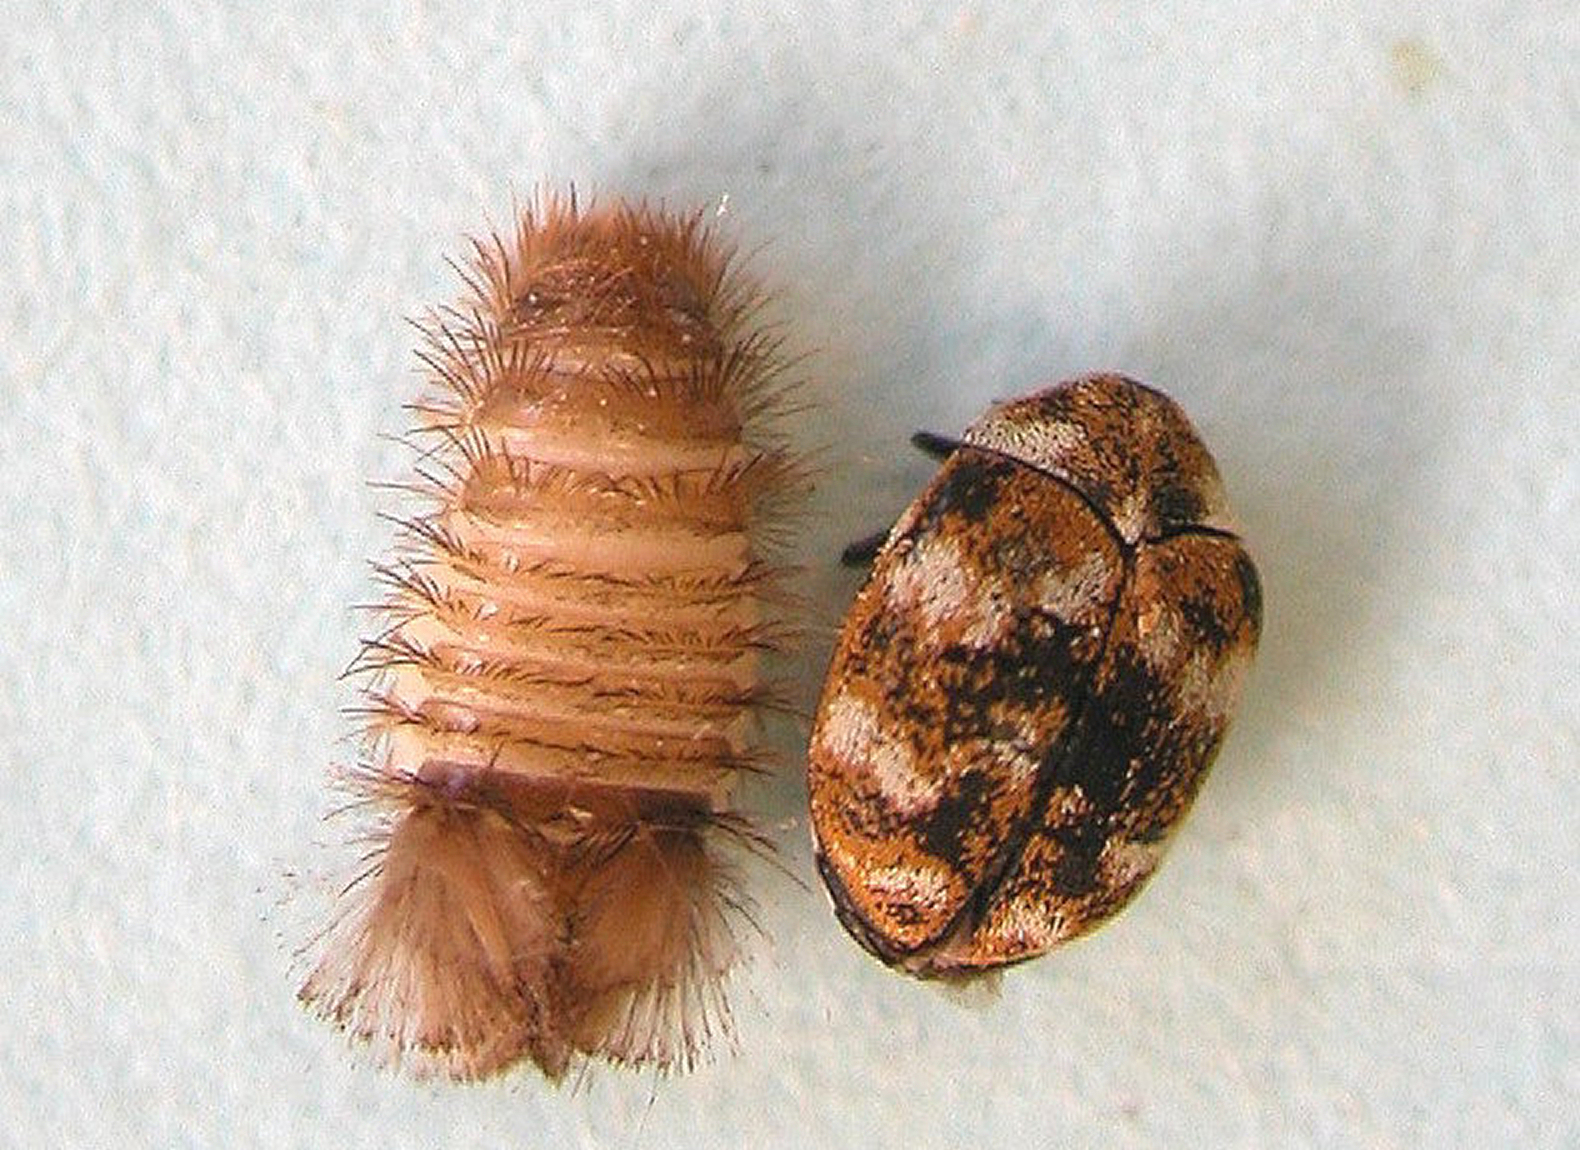 Carpet beetle adult an larva. Identifying and controlling clothes moths  carpet beetles and